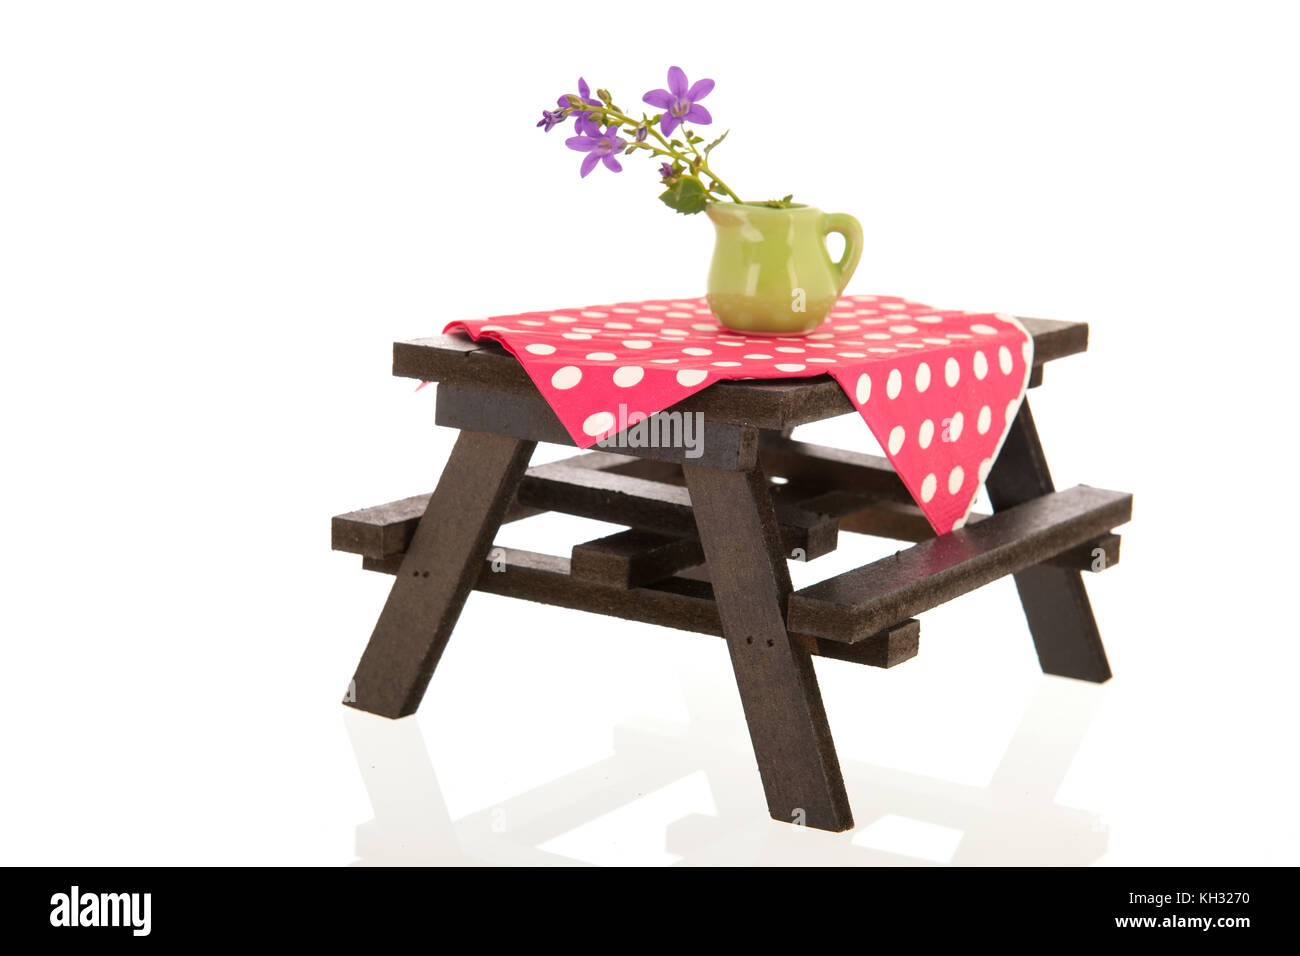 Picnic table with vase flowers stock photo 165410084 alamy picnic table with vase flowers reviewsmspy